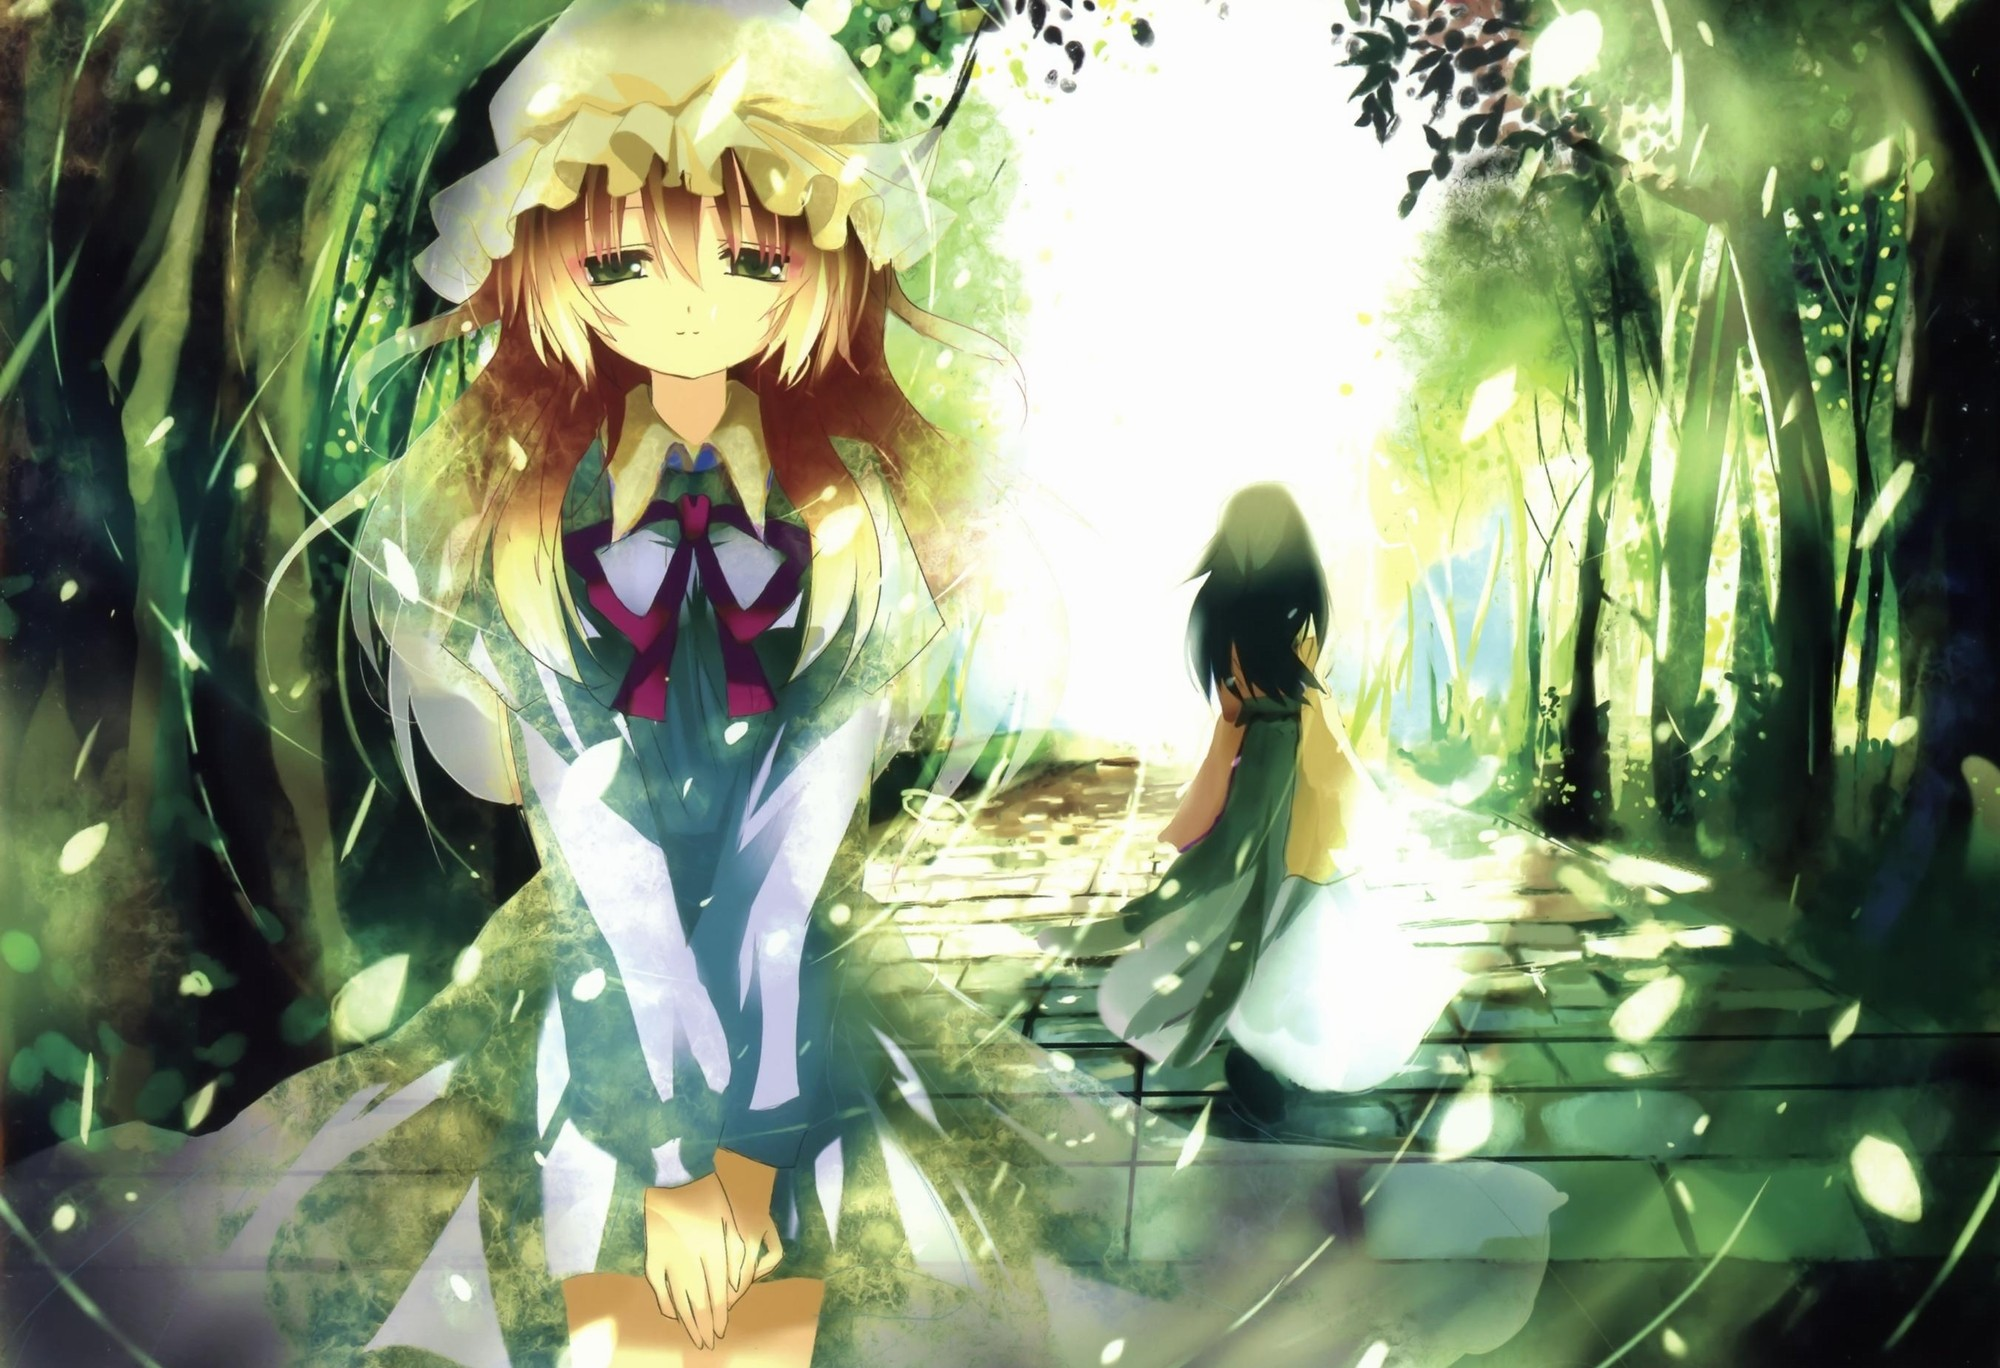 Pretty Falling Angel Wallpaper 1920x1080 Blondes Nature Touhou Paths Long Hair Sparkles Green Eyes